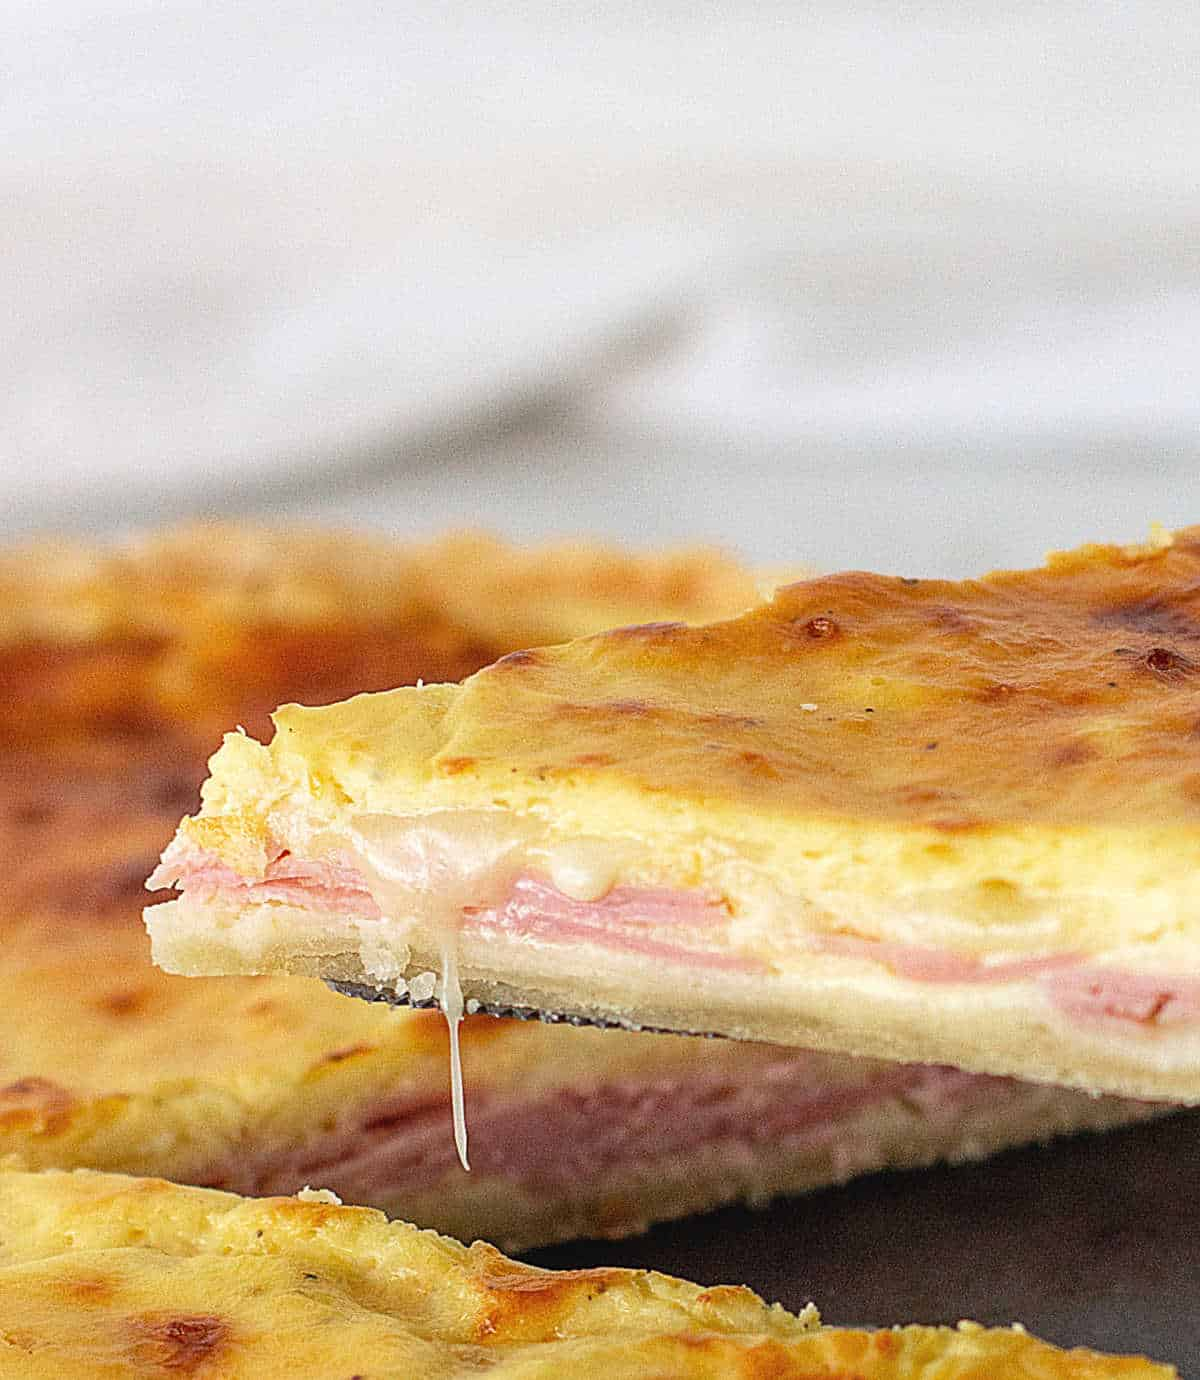 Lifting slice of ham and cheese quiche, melting cheese